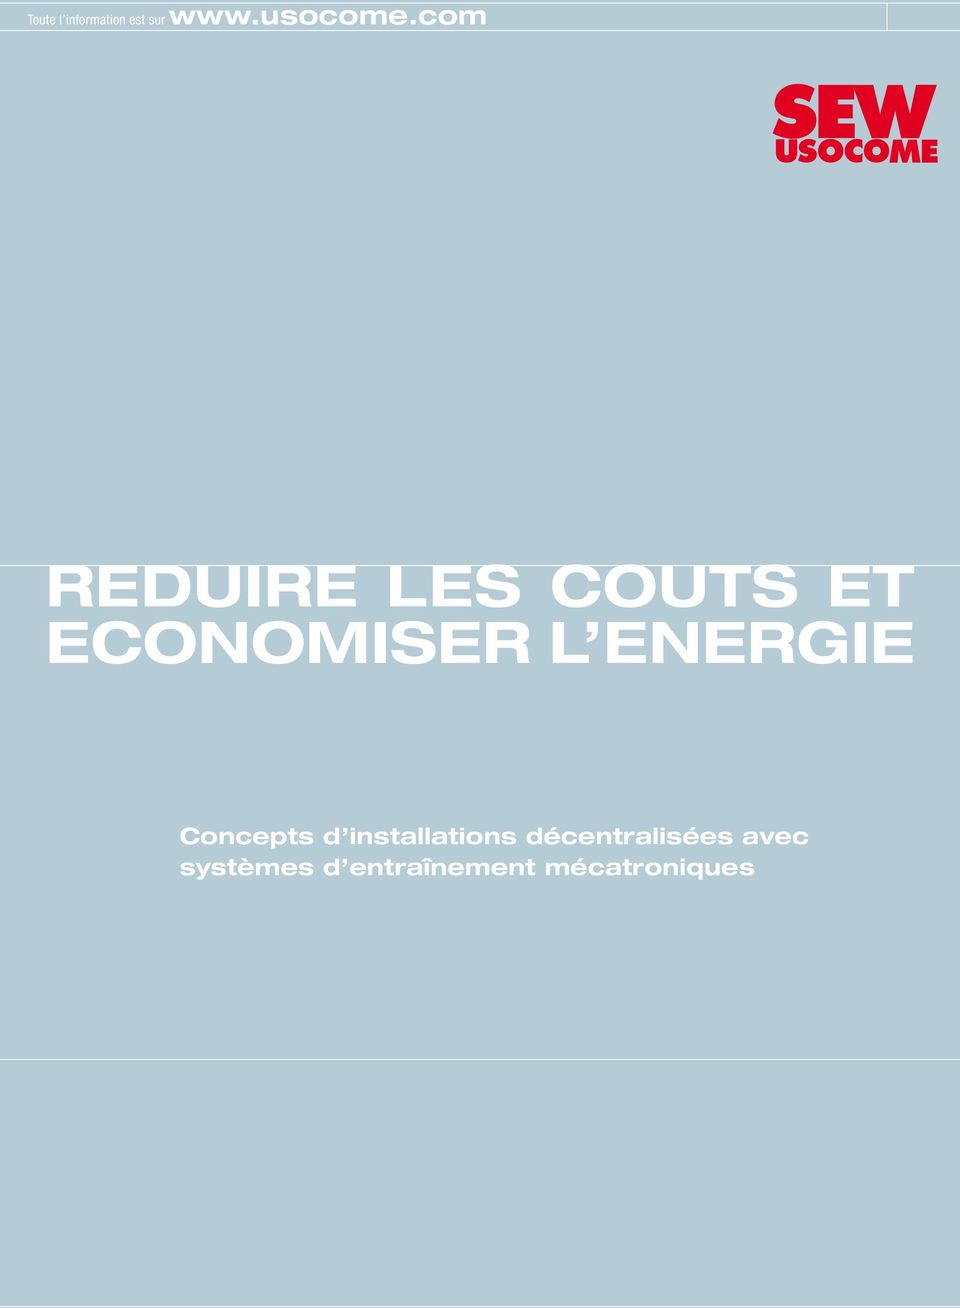 energie Concepts d installations